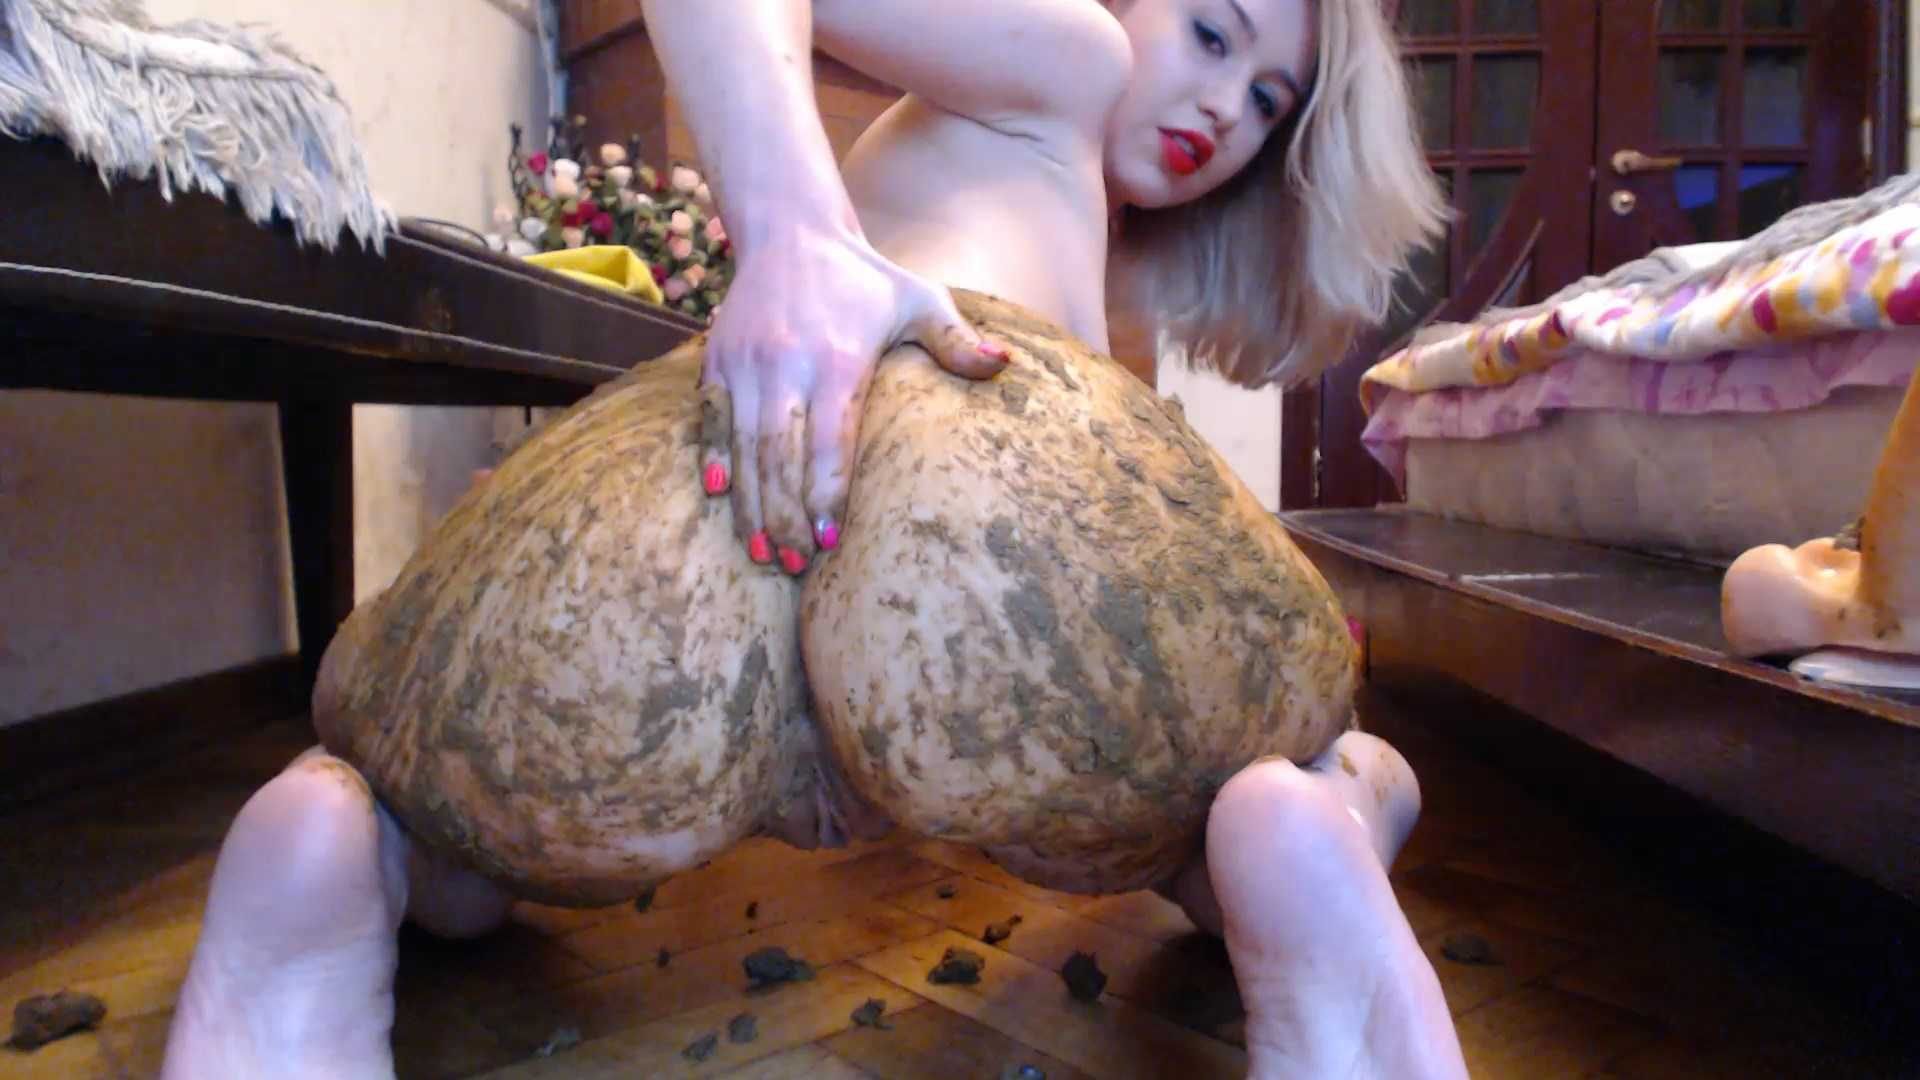 Smearing Ass with Shit - DirtyLena | Full HD 1080p | Jul 18, 2017